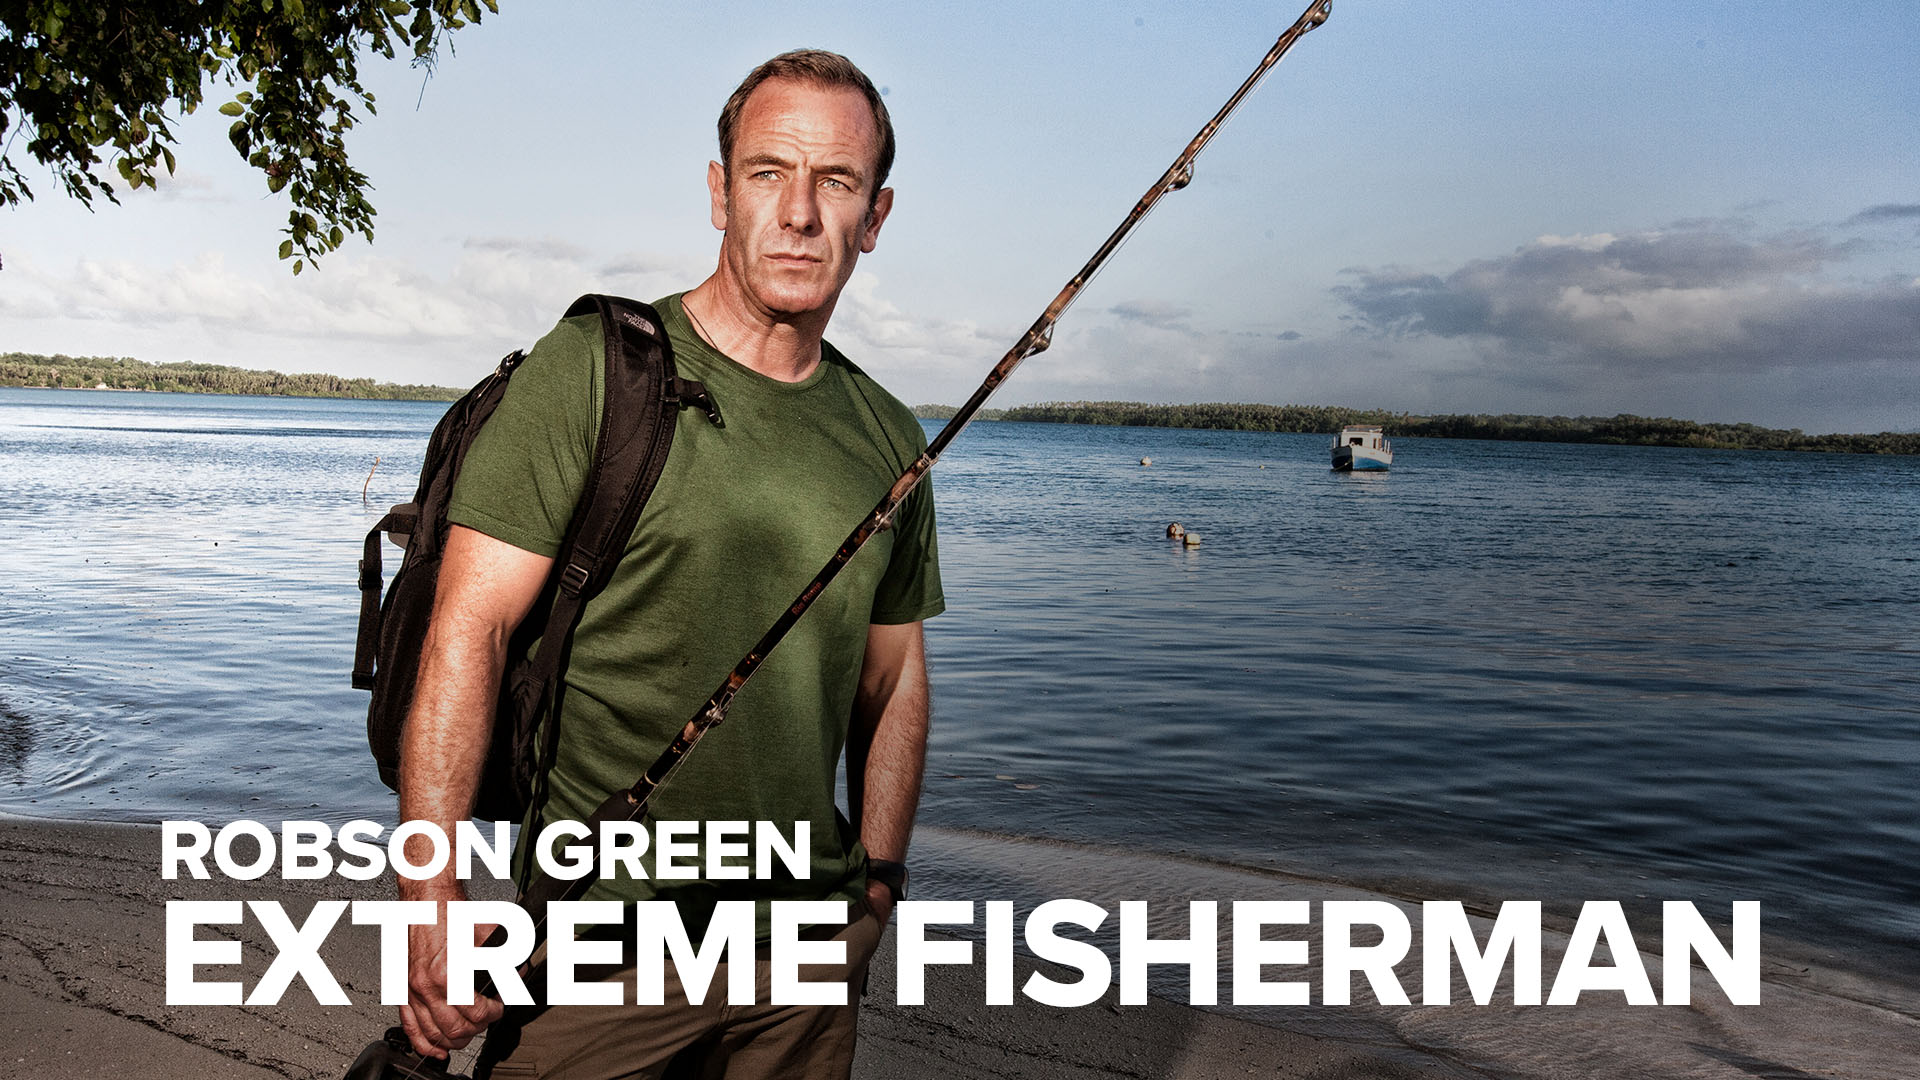 Robson Green's Extreme Fisherman